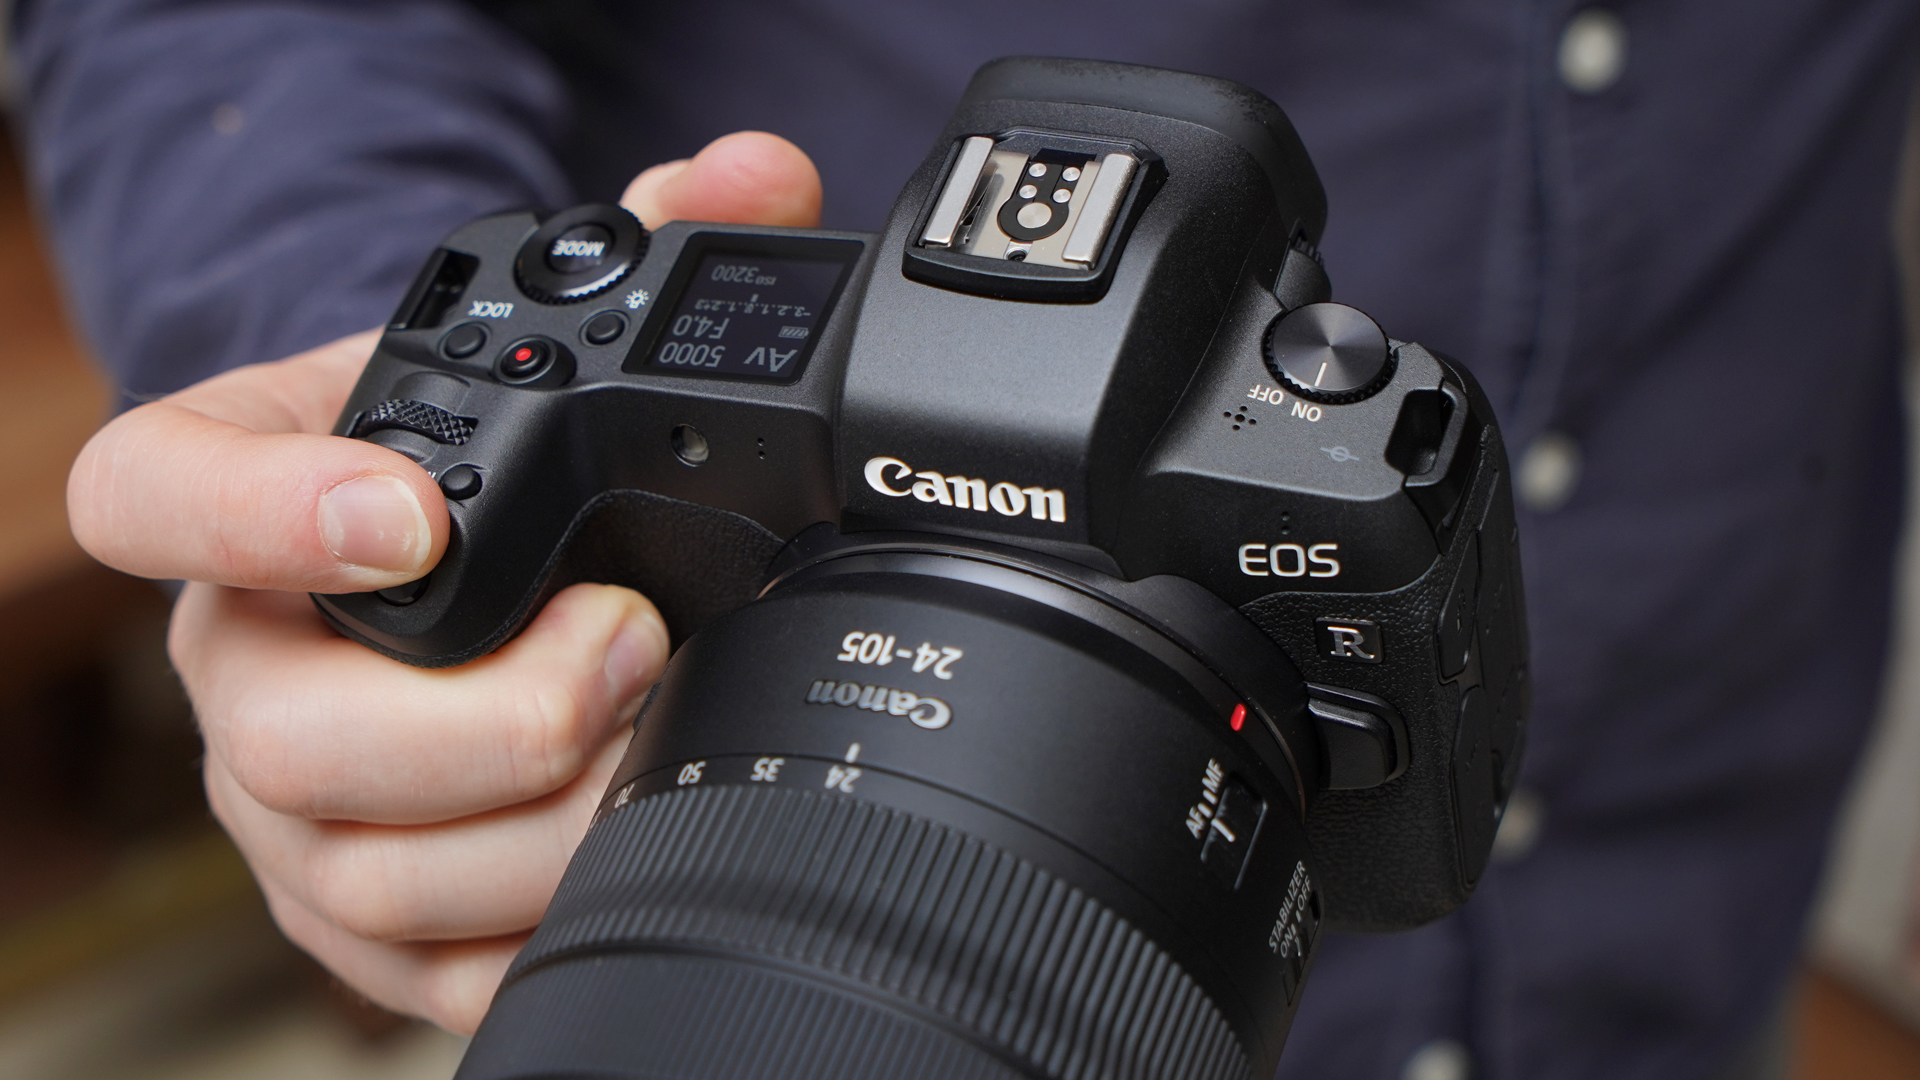 Canon will release four full-frame cameras in 2020, new rumors suggest